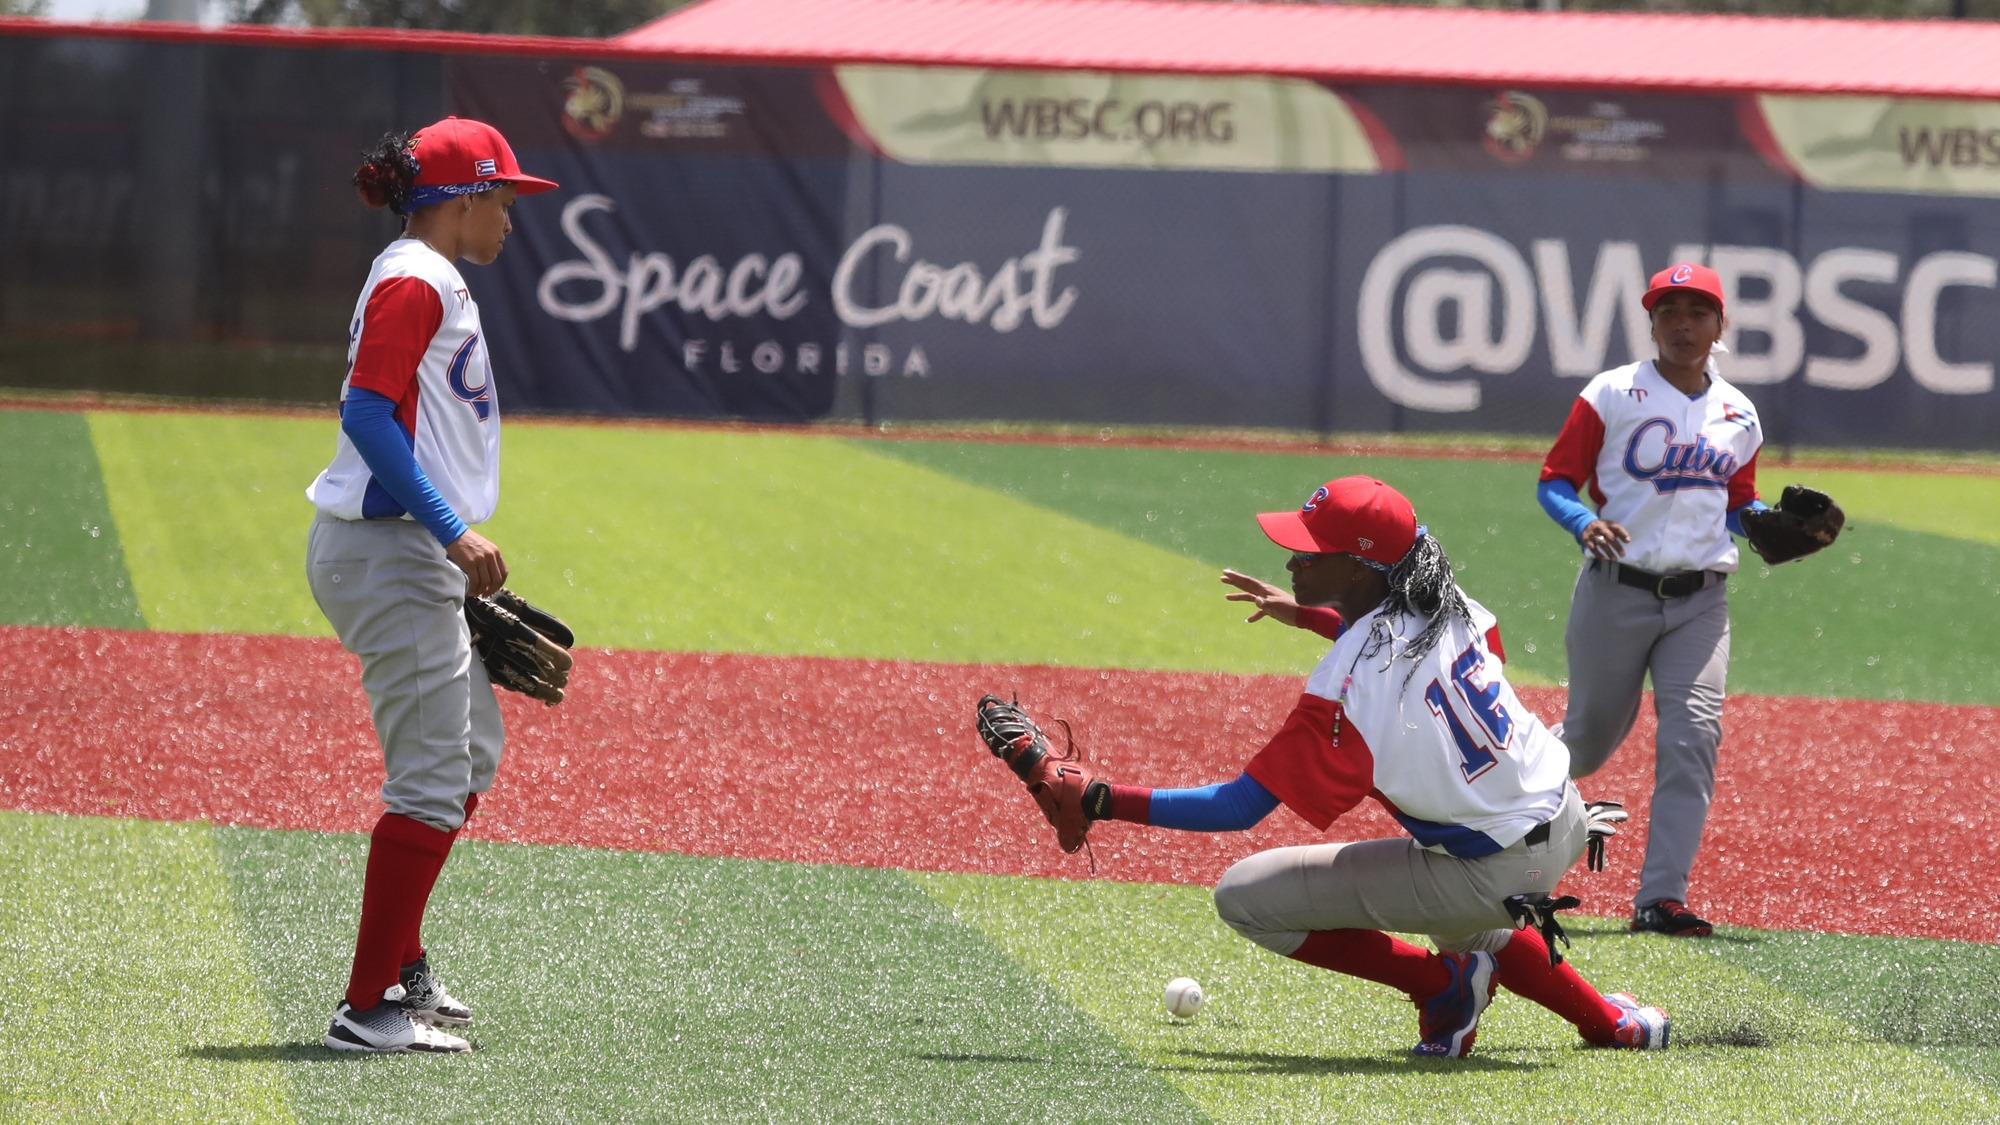 Cuba's defense went under pressure